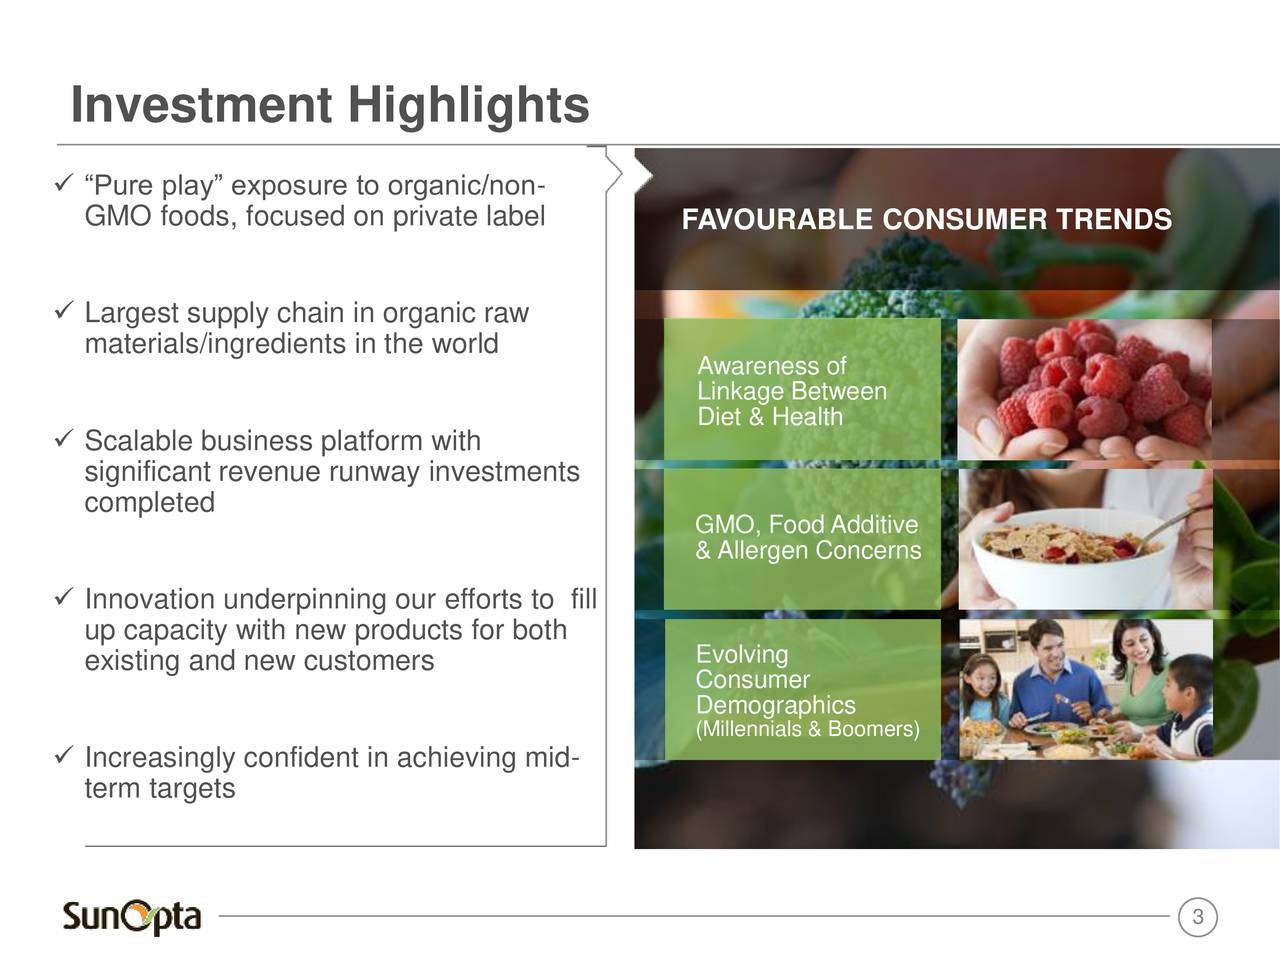 Pure play exposure to organic/non- GMO foods, focused on private label FAVOURABLE CONSUMER TRENDS Largest supply chain in organic raw materials/ingredients in the world Awareness of Linkage Between Diet & Health Scalable business platform with significant revenue runway investments completed GMO, Food Additive & Allergen Concerns Innovation underpinning our efforts to fill up capacity with new products for both existing and new customers Evolving Consumer Demographics (Millennials & Boomers) Increasingly confident in achieving mid- term targets 3